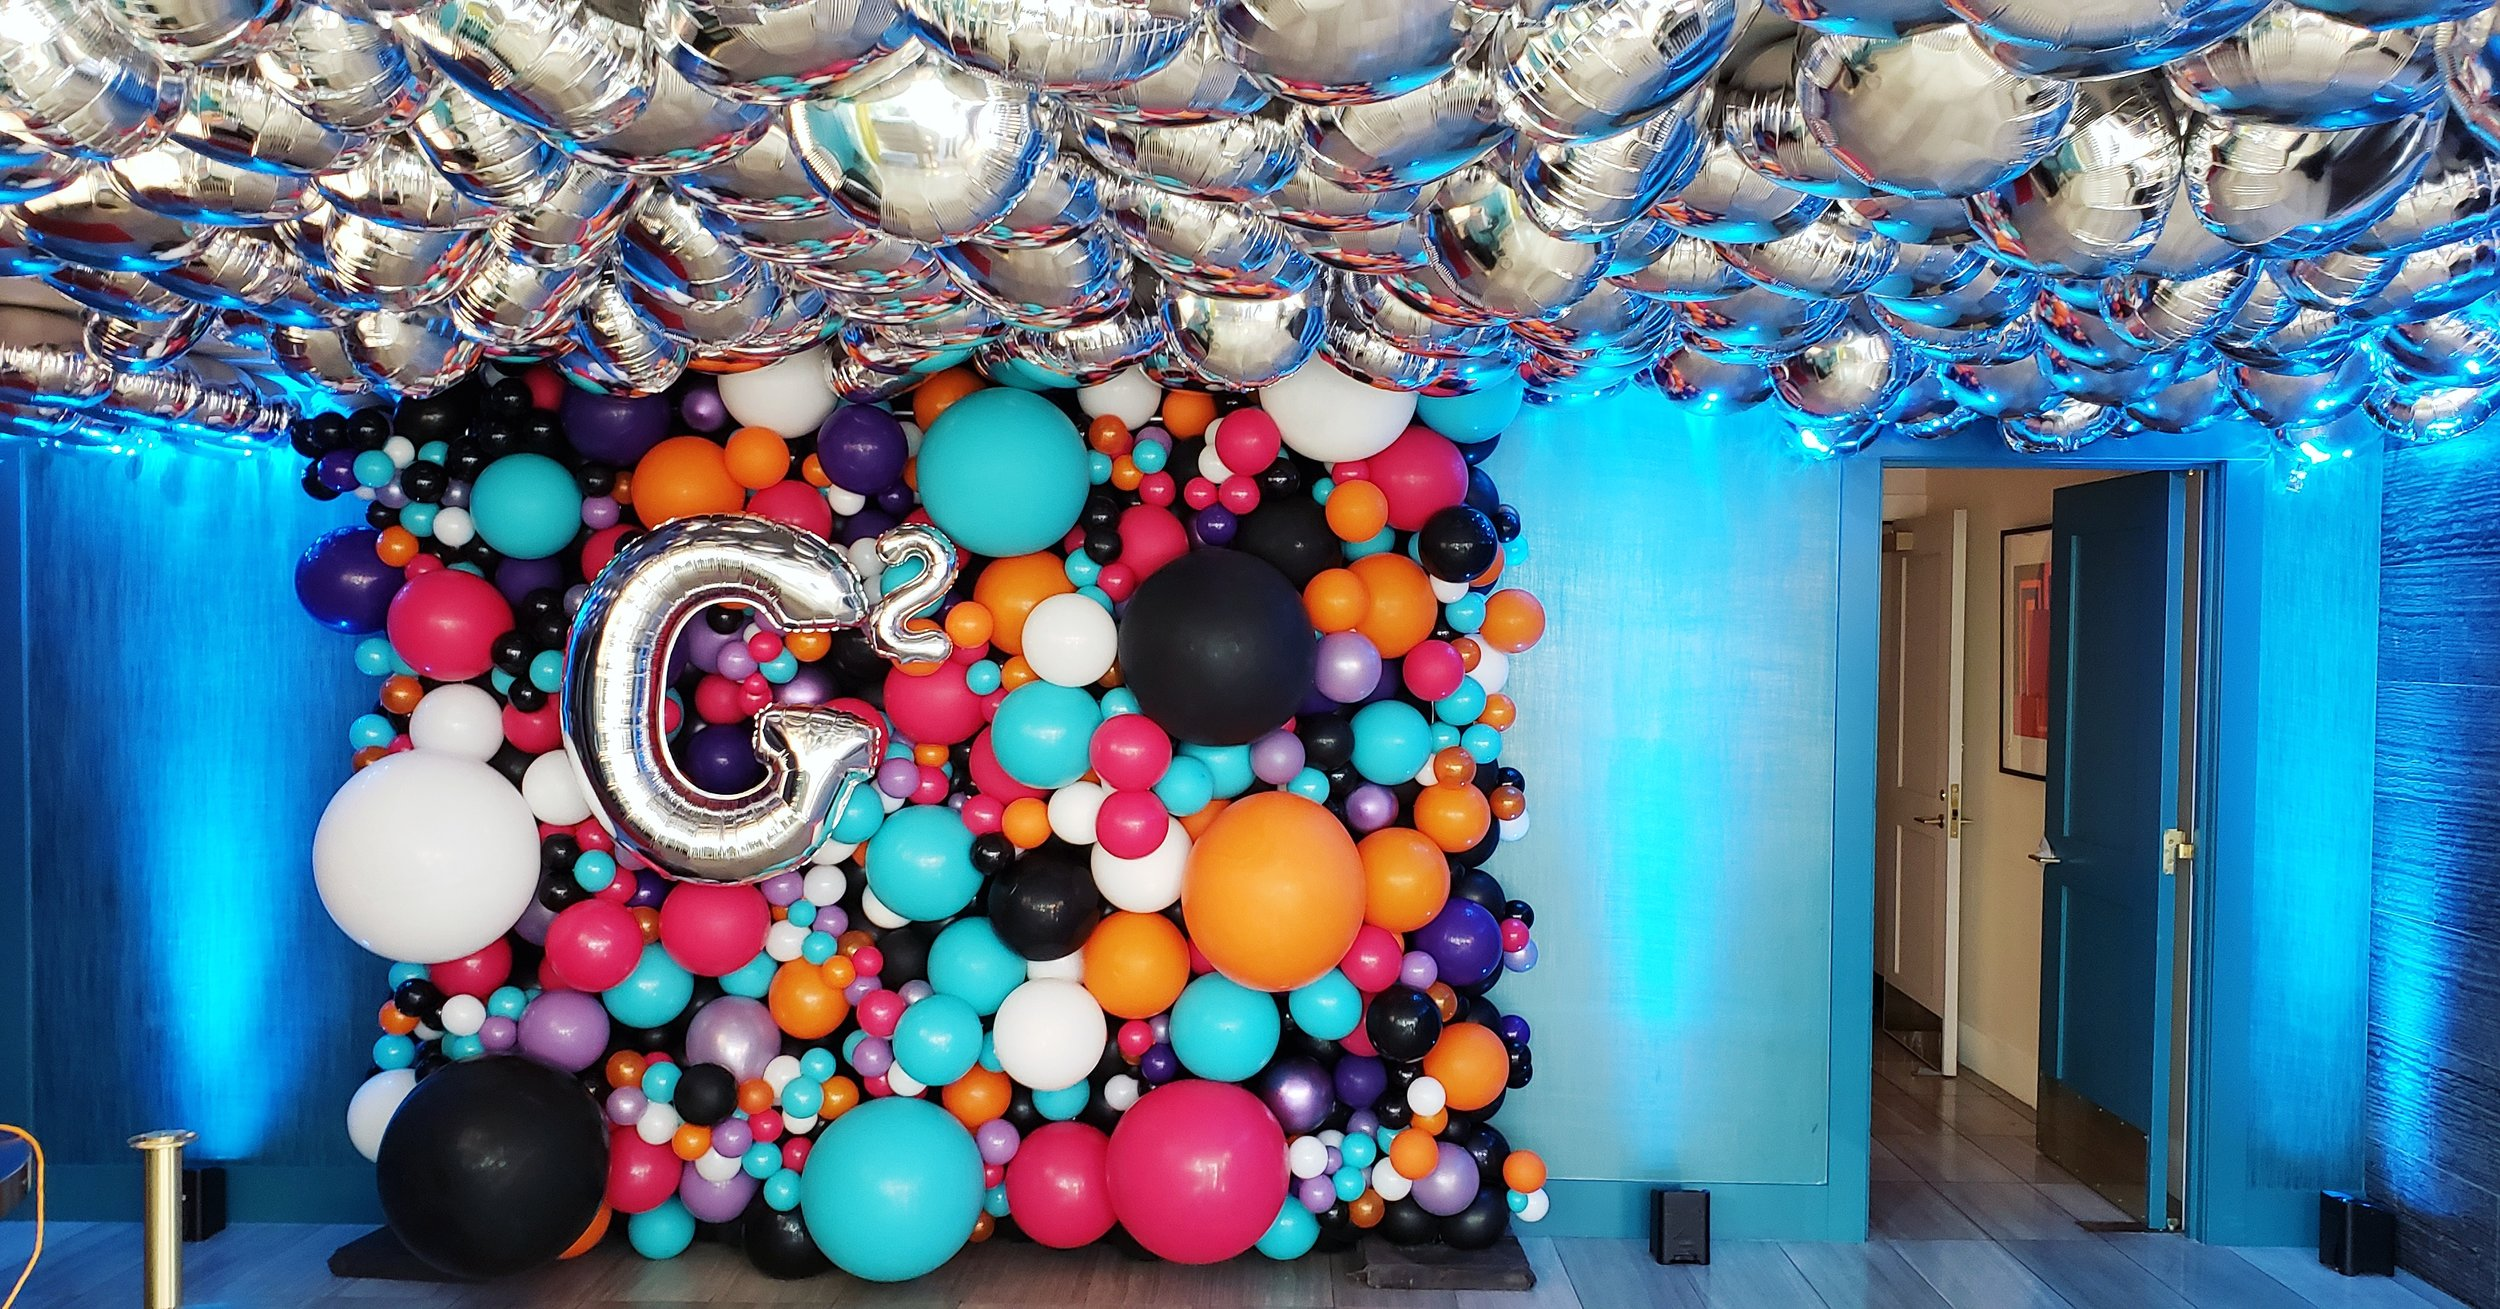 Organic Balloon Wall SF Bay Area Balloon Shop - Zim Balloons.jpg